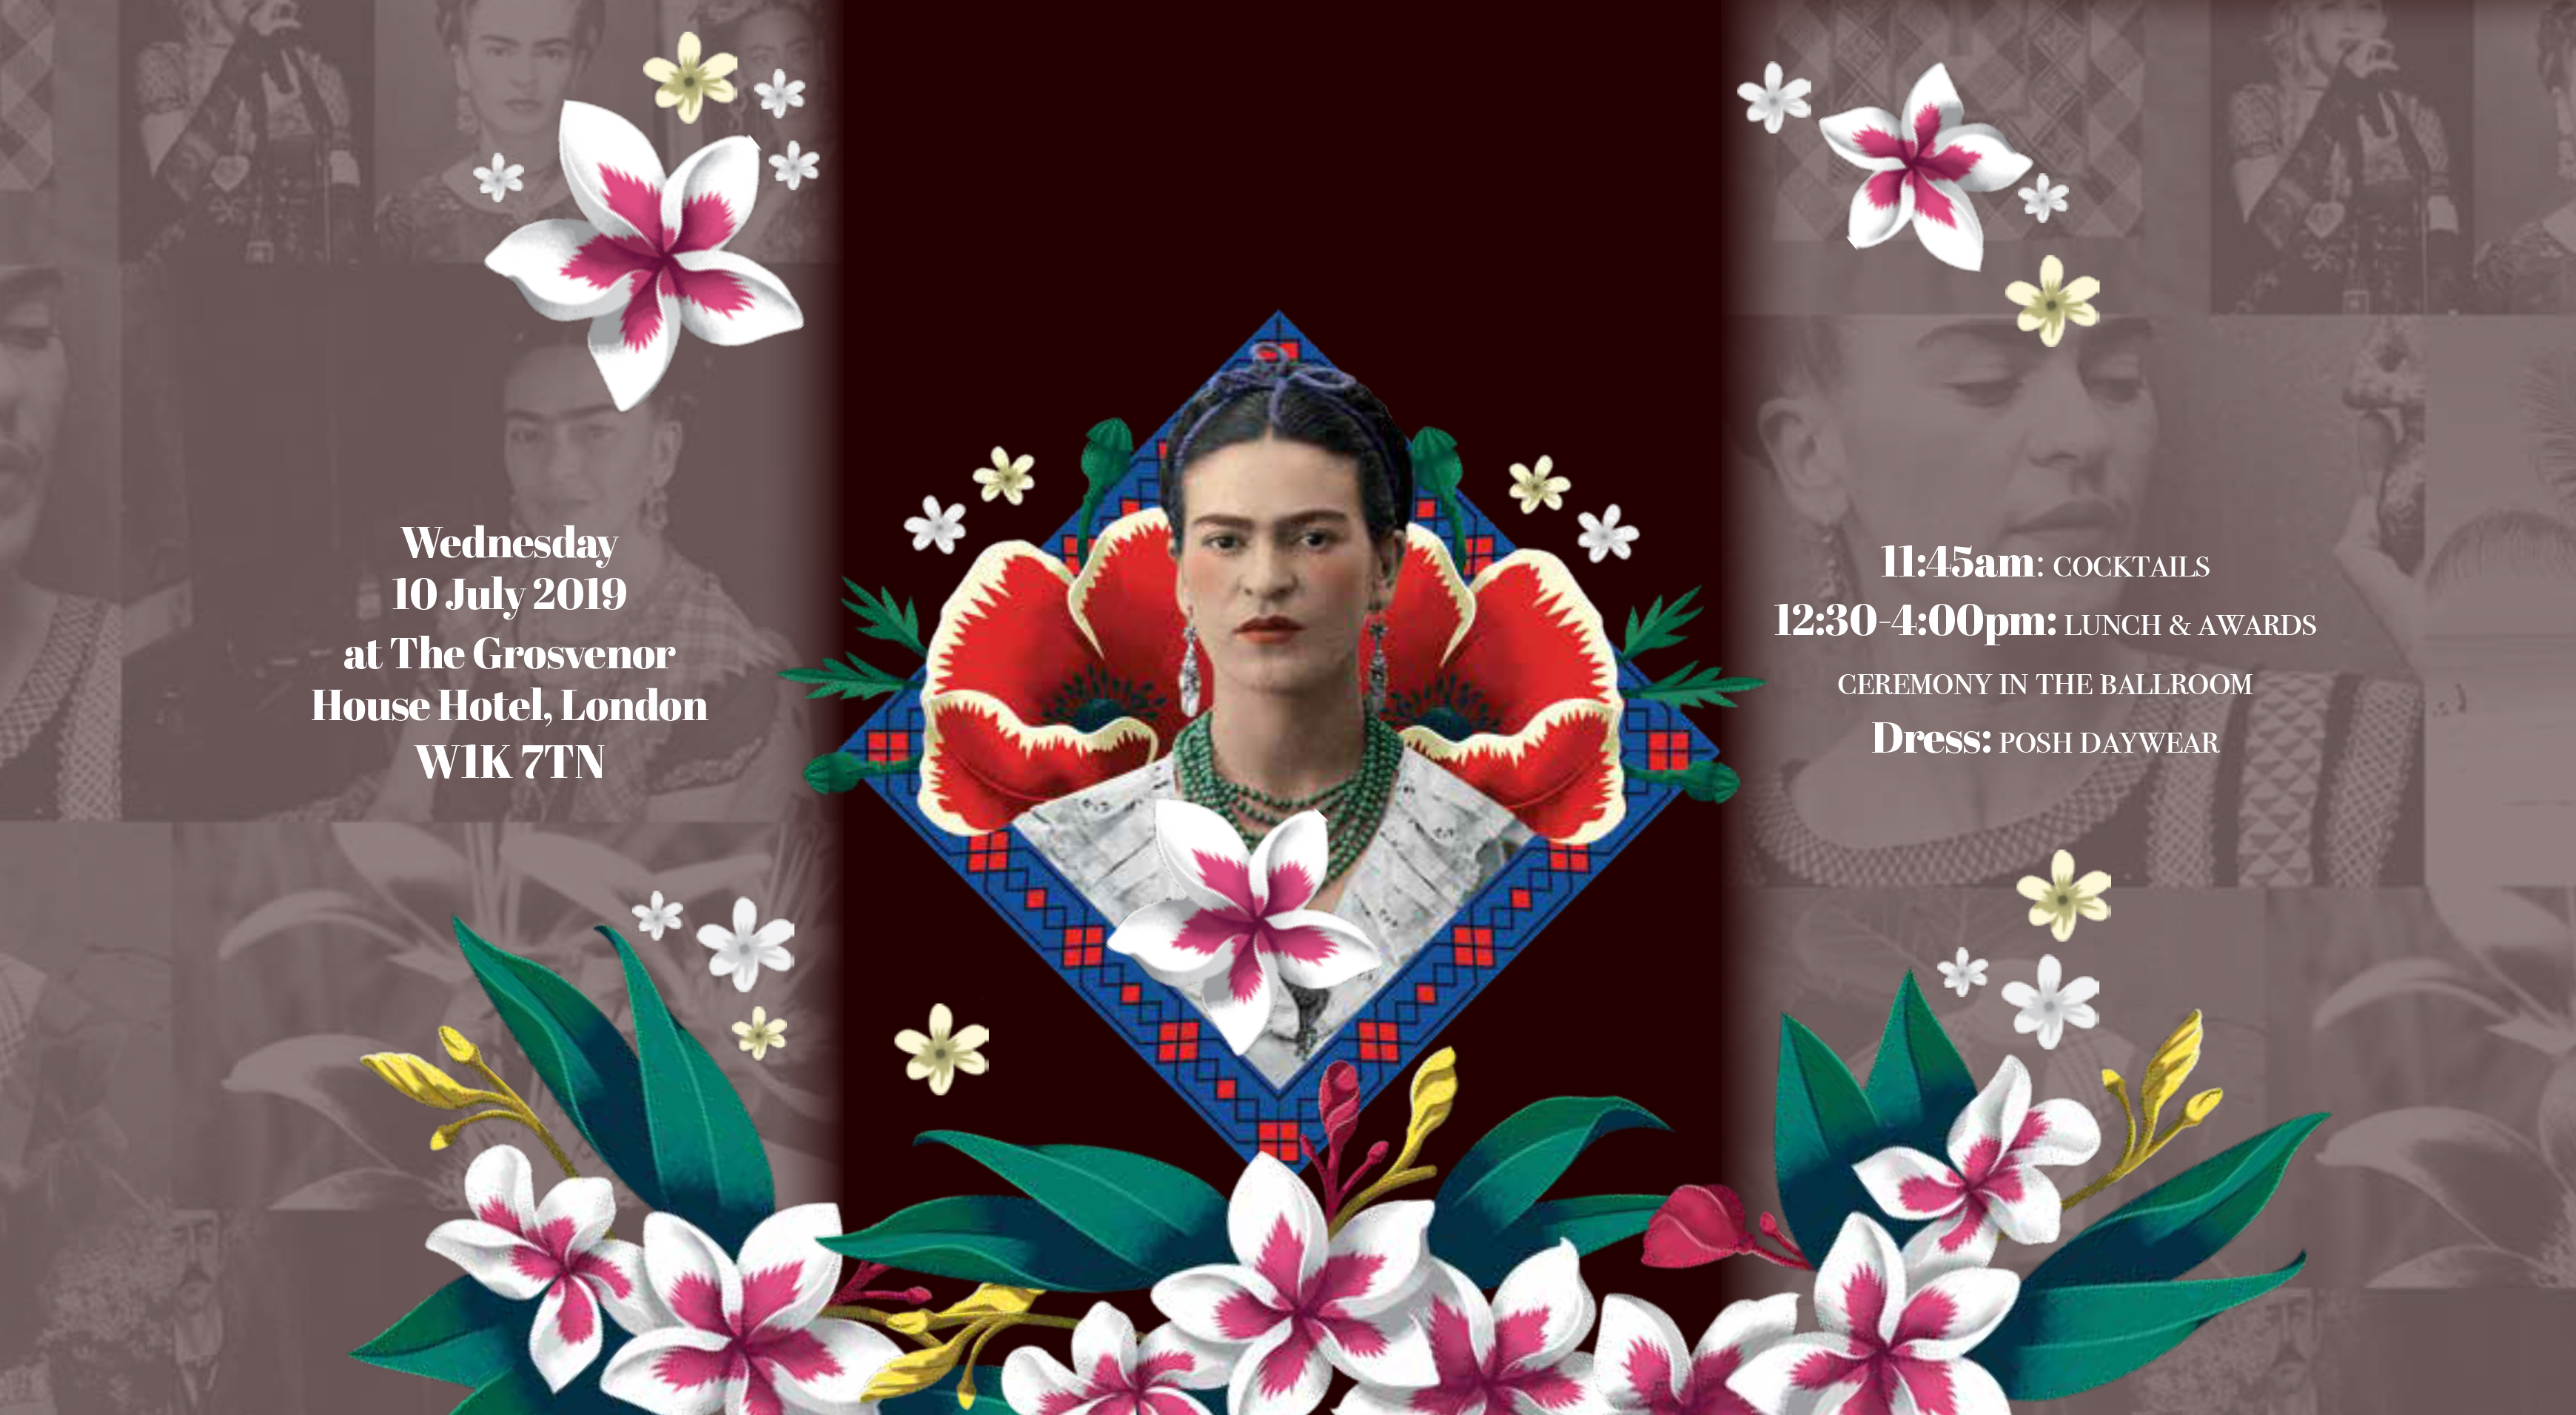 Above: The invitation opens out to reveal an image of Frida Kahlo.